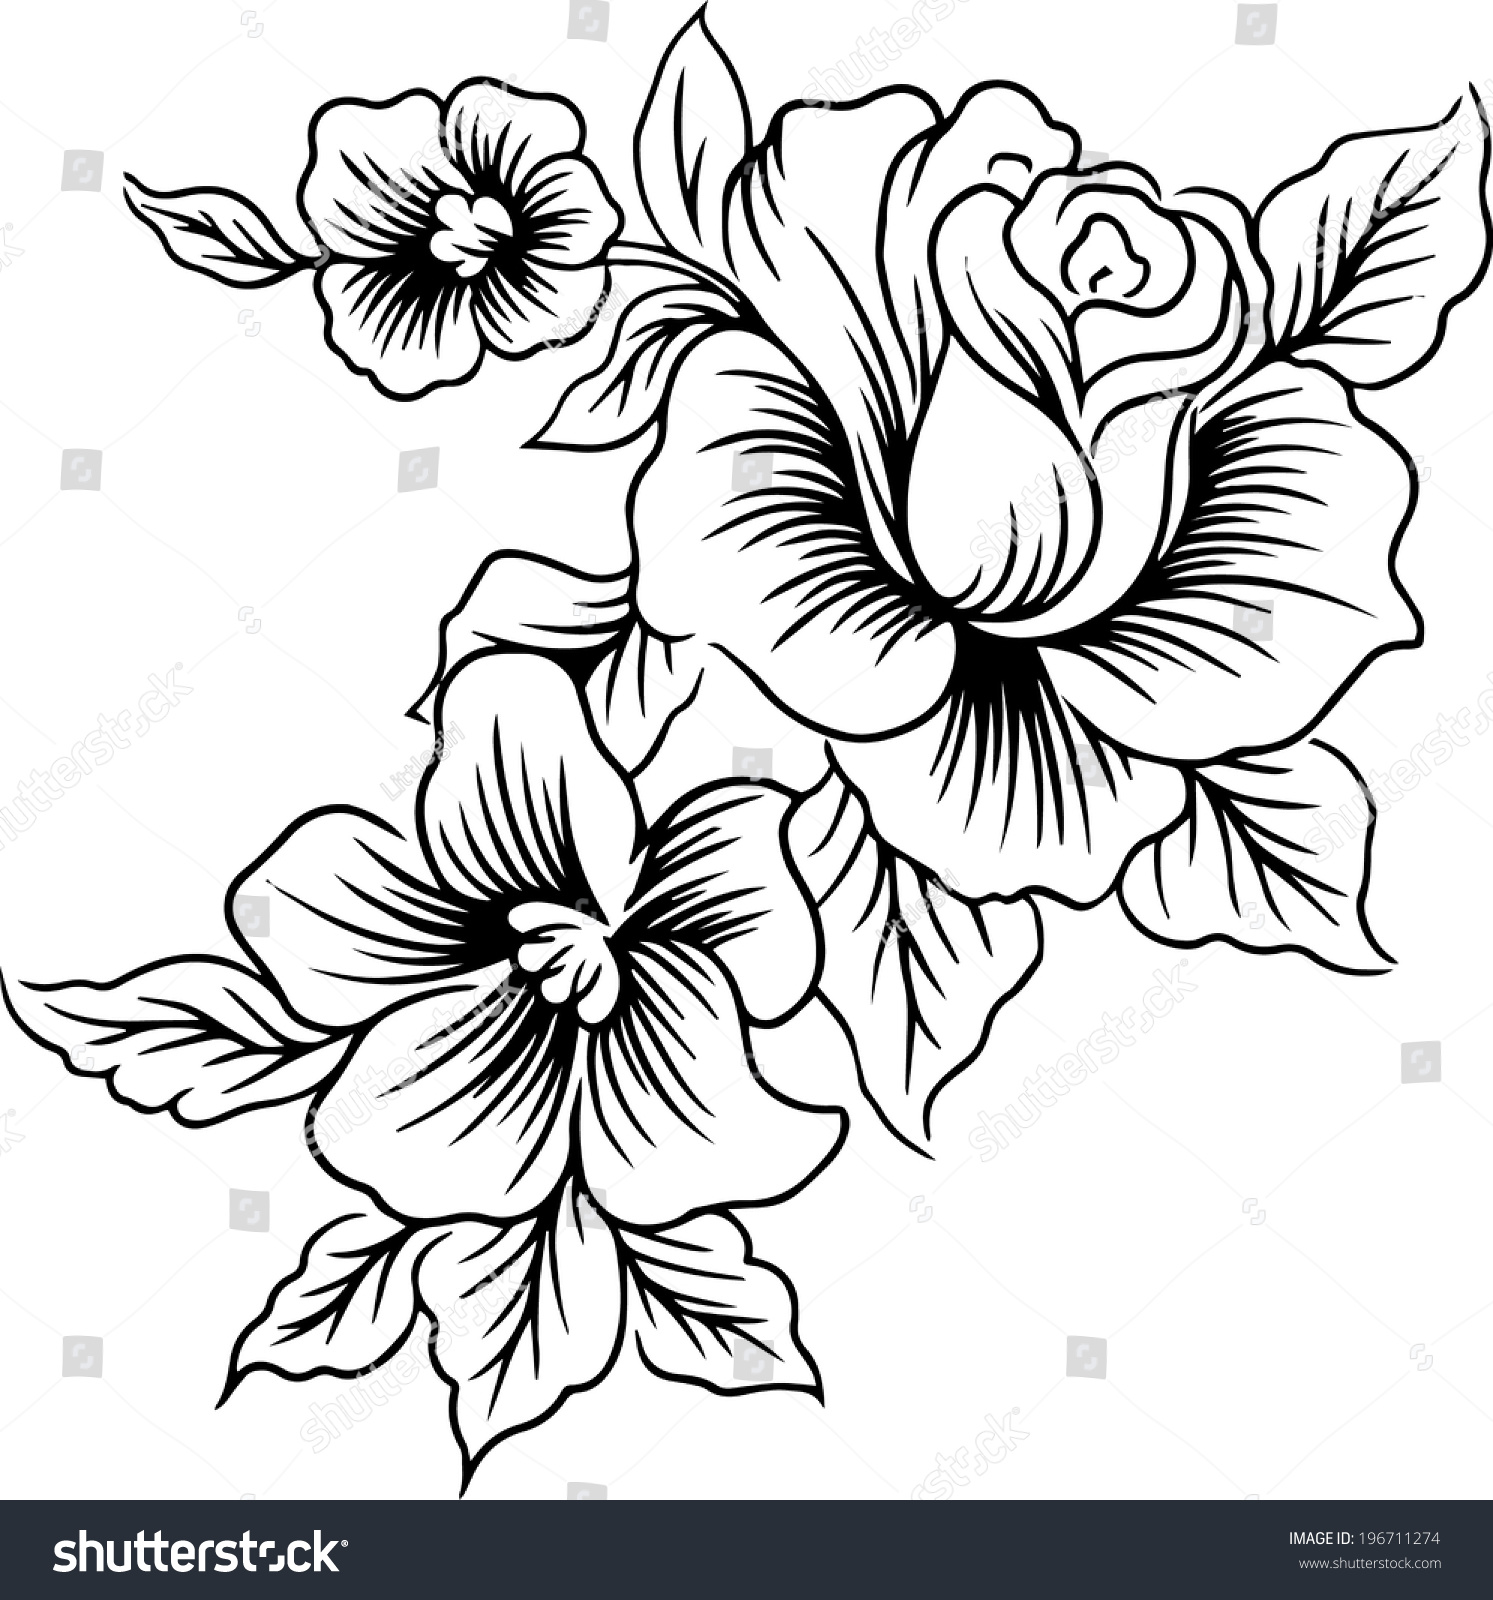 Beautiful Flower Line Drawing : Hand drawings lines flowers beautiful vector stock